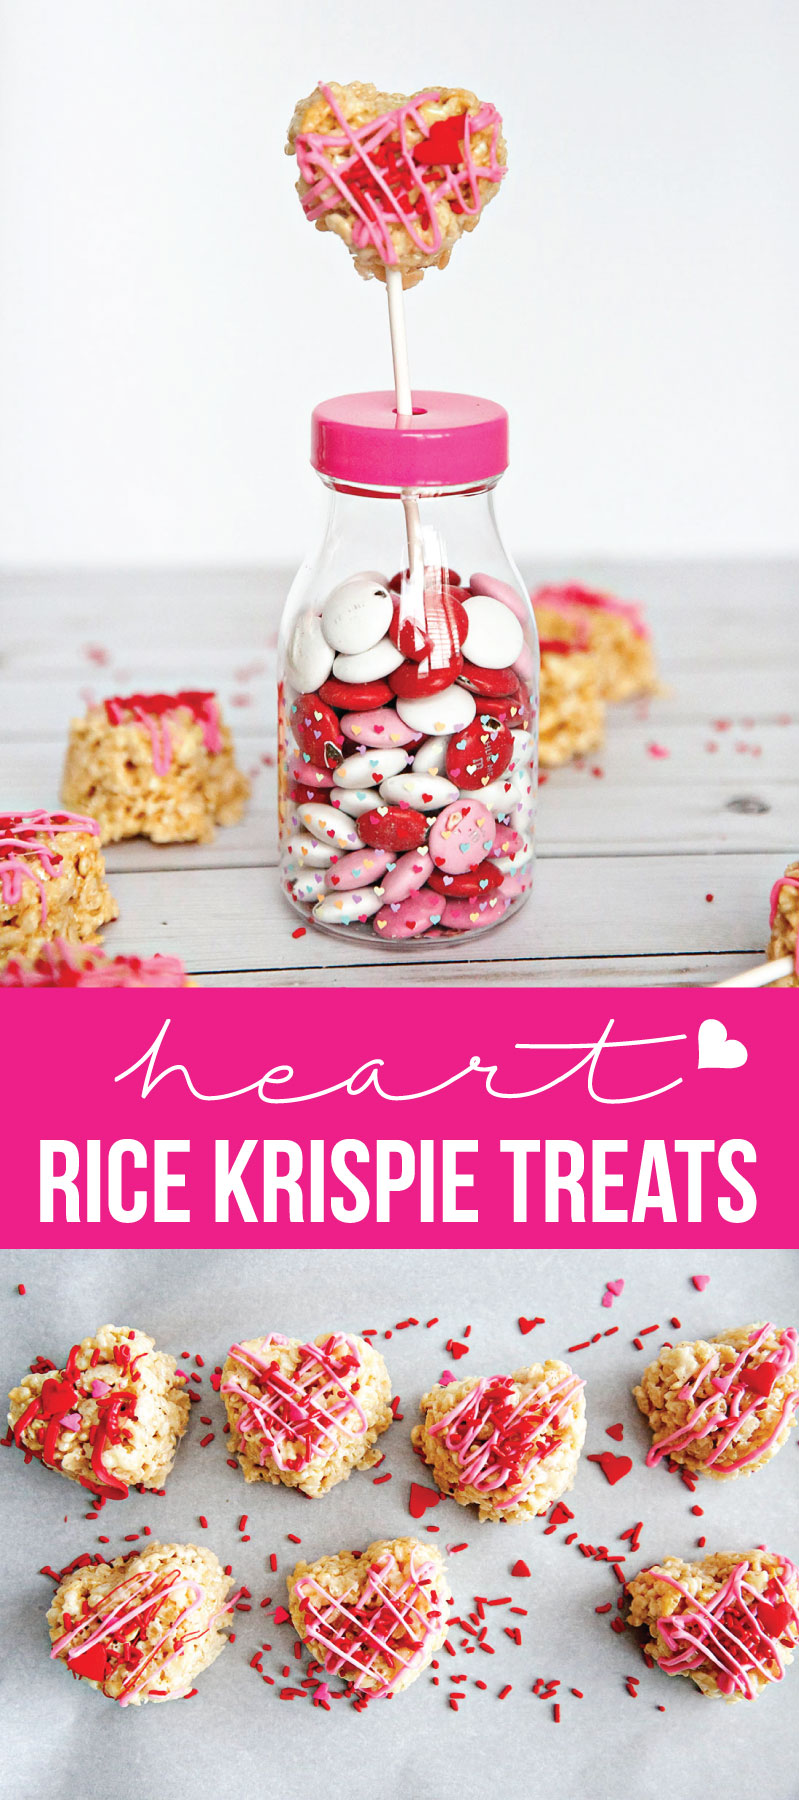 Food: Heart Rice Krispie Treats! Perfect for Valentine's Day - these yummy and cute treats will hit the spot! via www.thirtyhandmadedays.com